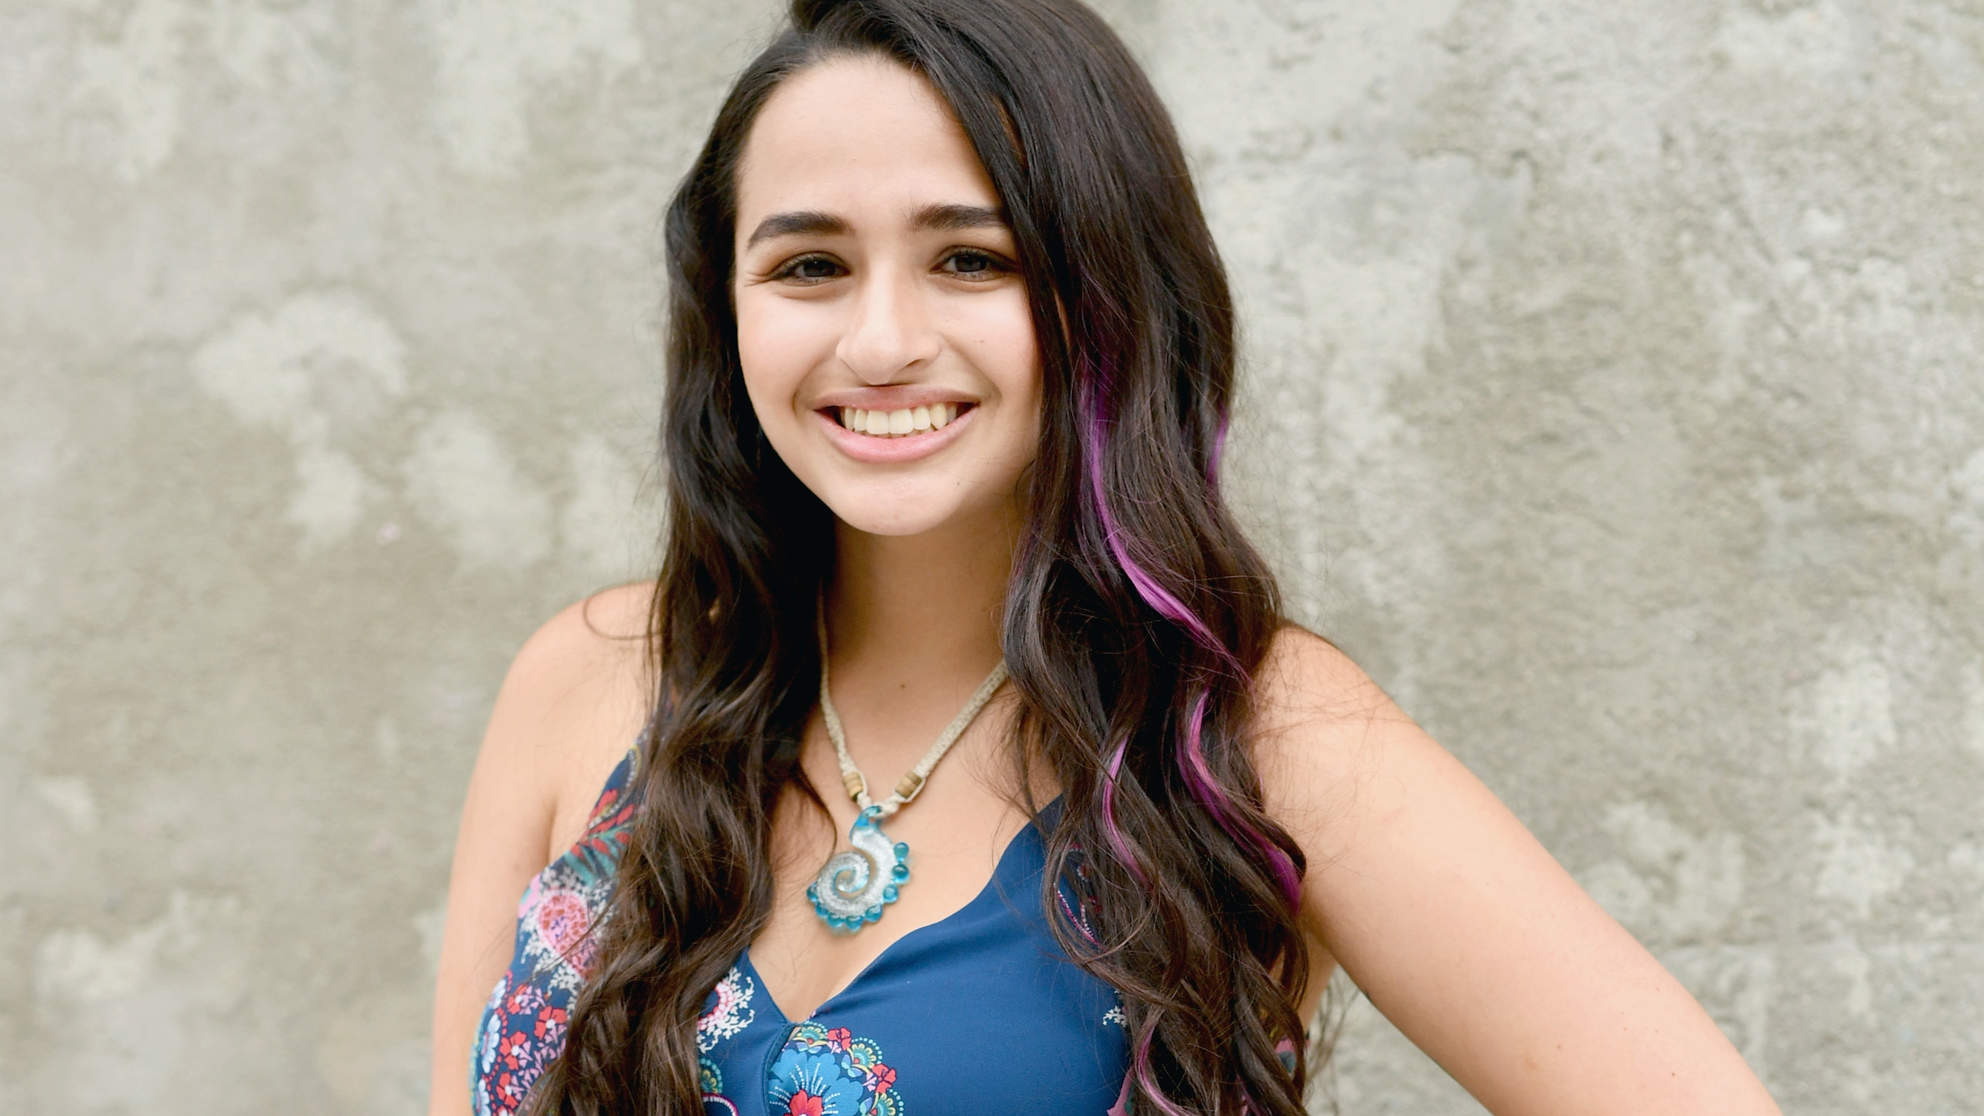 Jazz Jennings Discusses 'the Sexual Stuff' with Her Doctor Ahead of Gender Confirmation Surgery